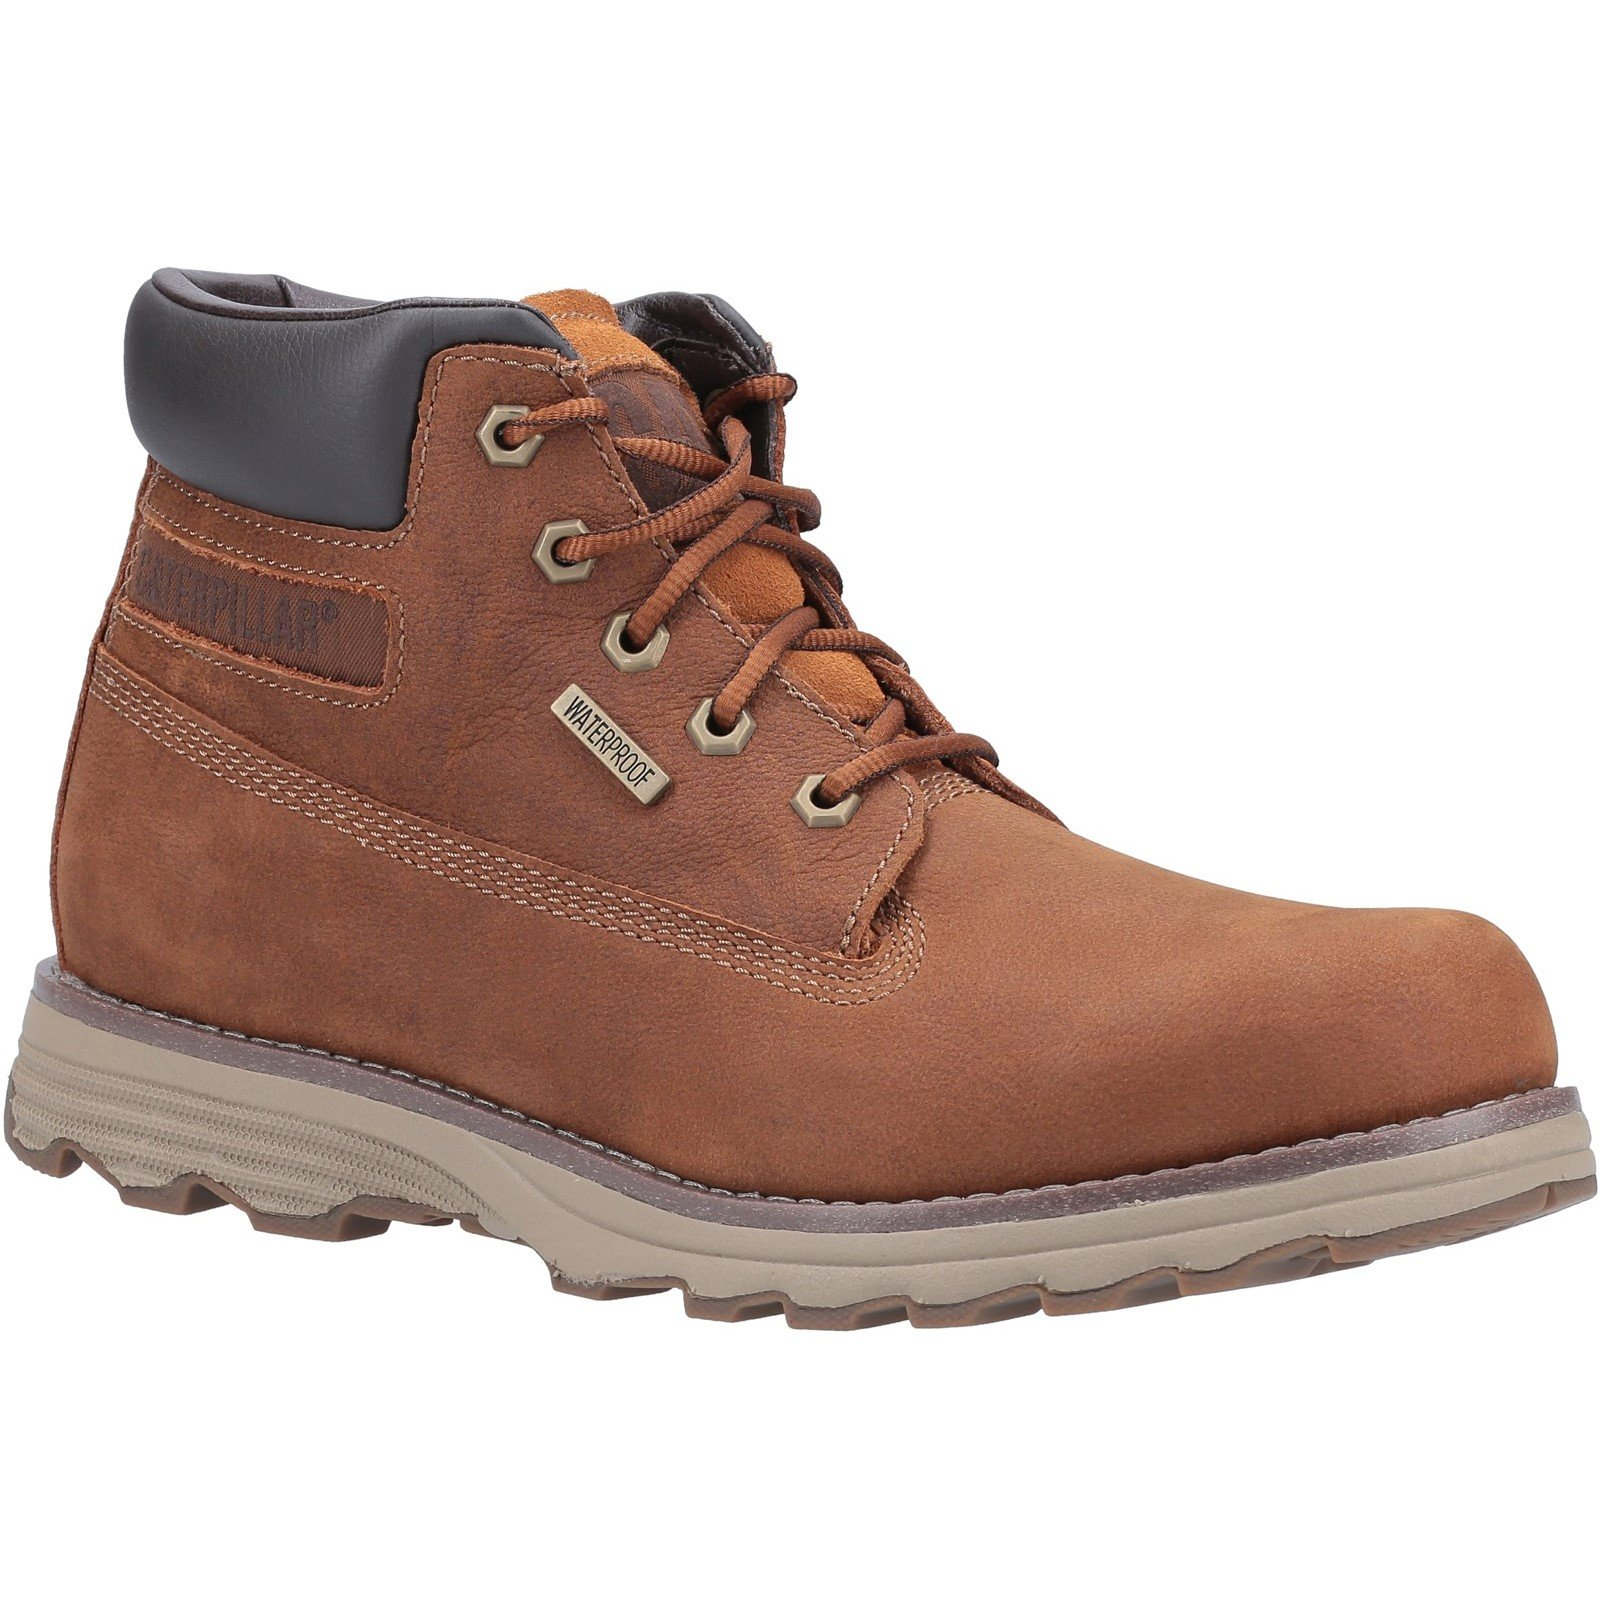 CAT Lifestyle Men's Founder WP TX Lace Up Boot 31487-53851 - Danish Brown 9